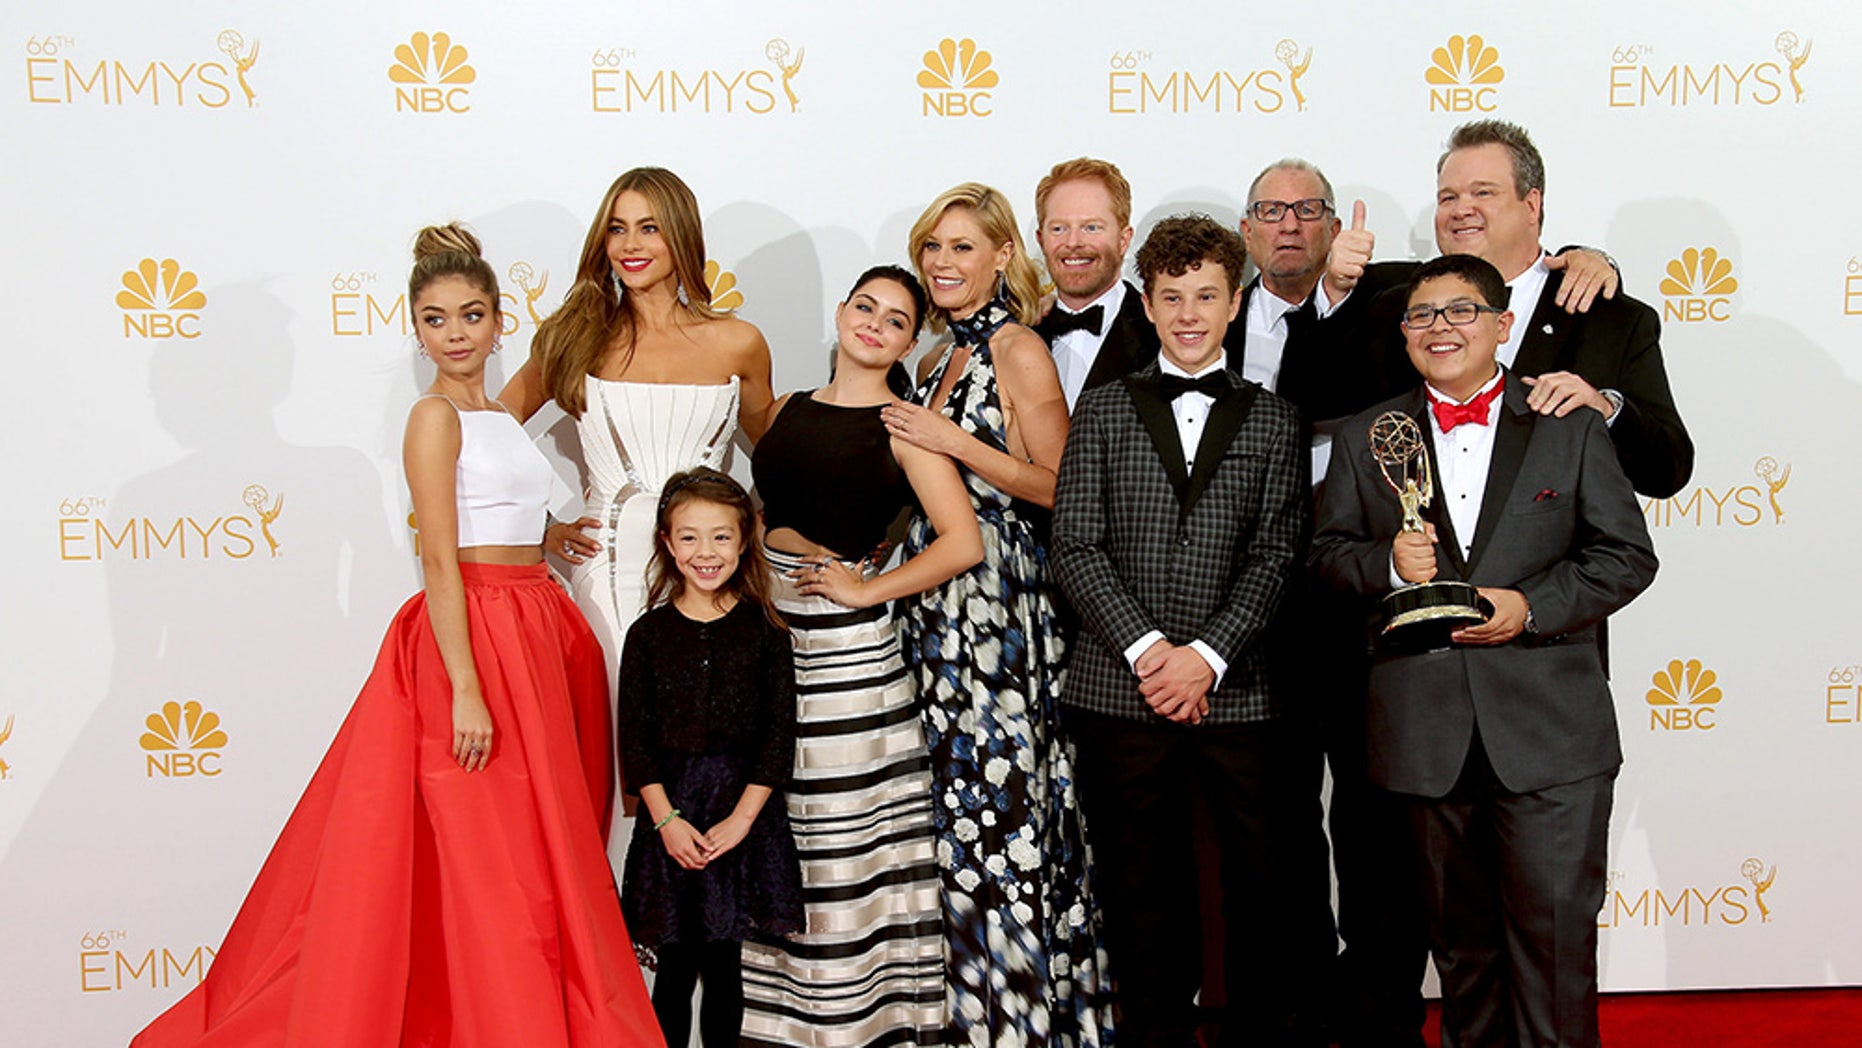 'Modern Family' is killing off a 'significant character' in season 10, co-creator Christopher Lloyd told Entertainment Weekly in a new interview published Thursday.